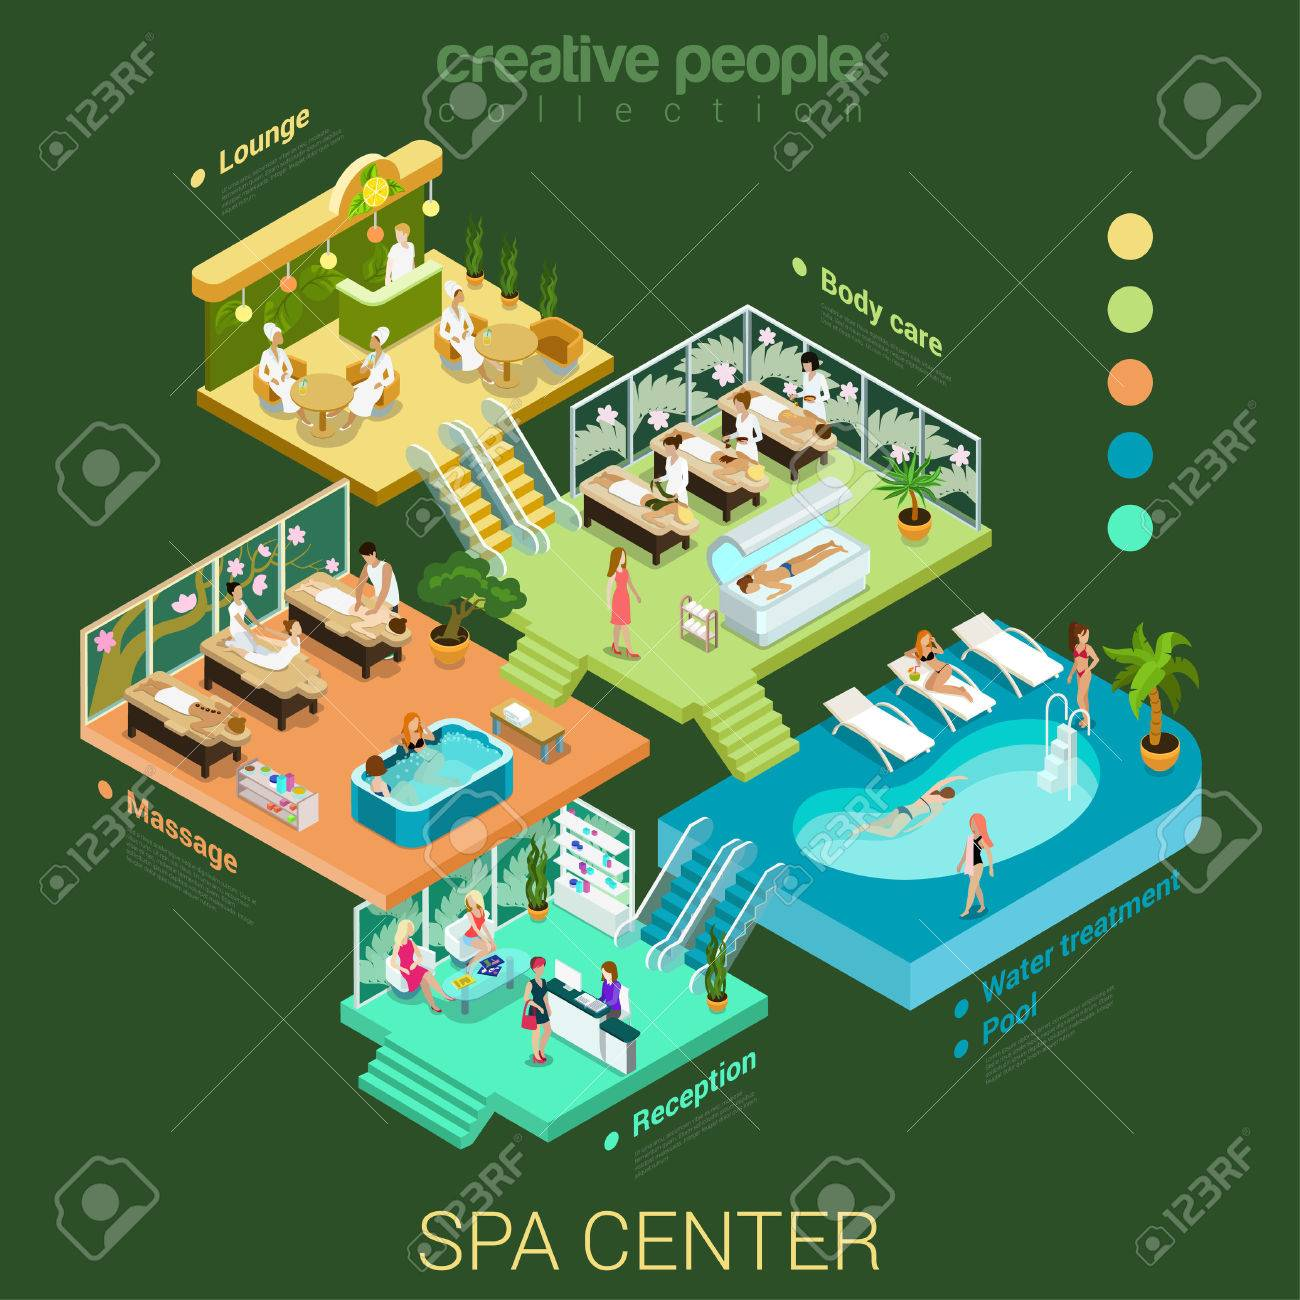 Plan 3d Salon Flat 3d Isometric Abstract Spa Salon Center Floor Interior Departments